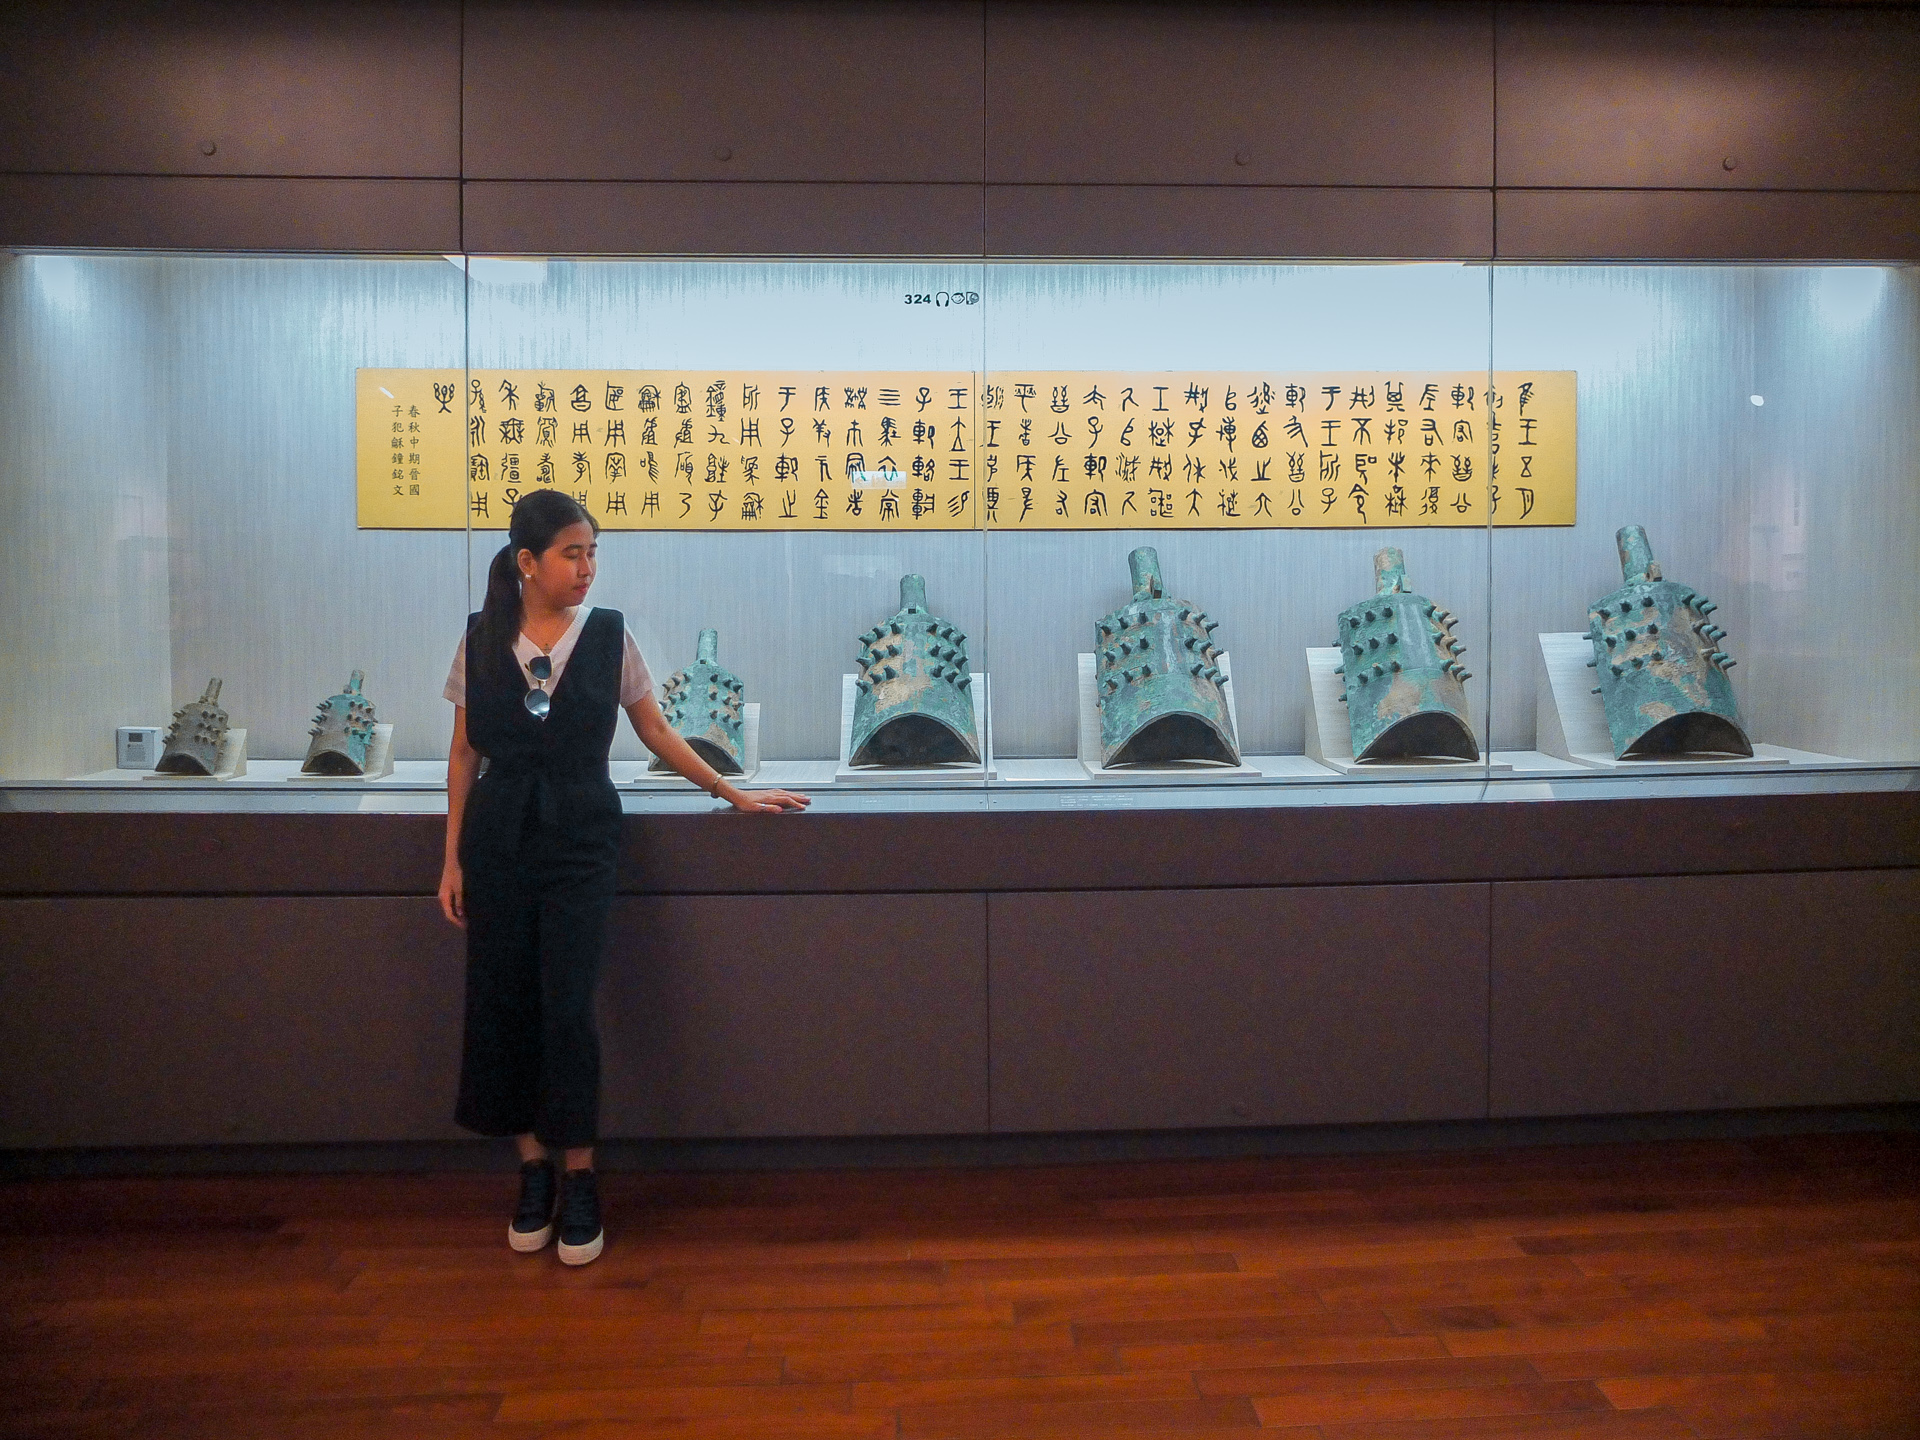 What to Do in Taipei: Taipei 101 and National Palace Museum via KKDay - https://thejerny.com